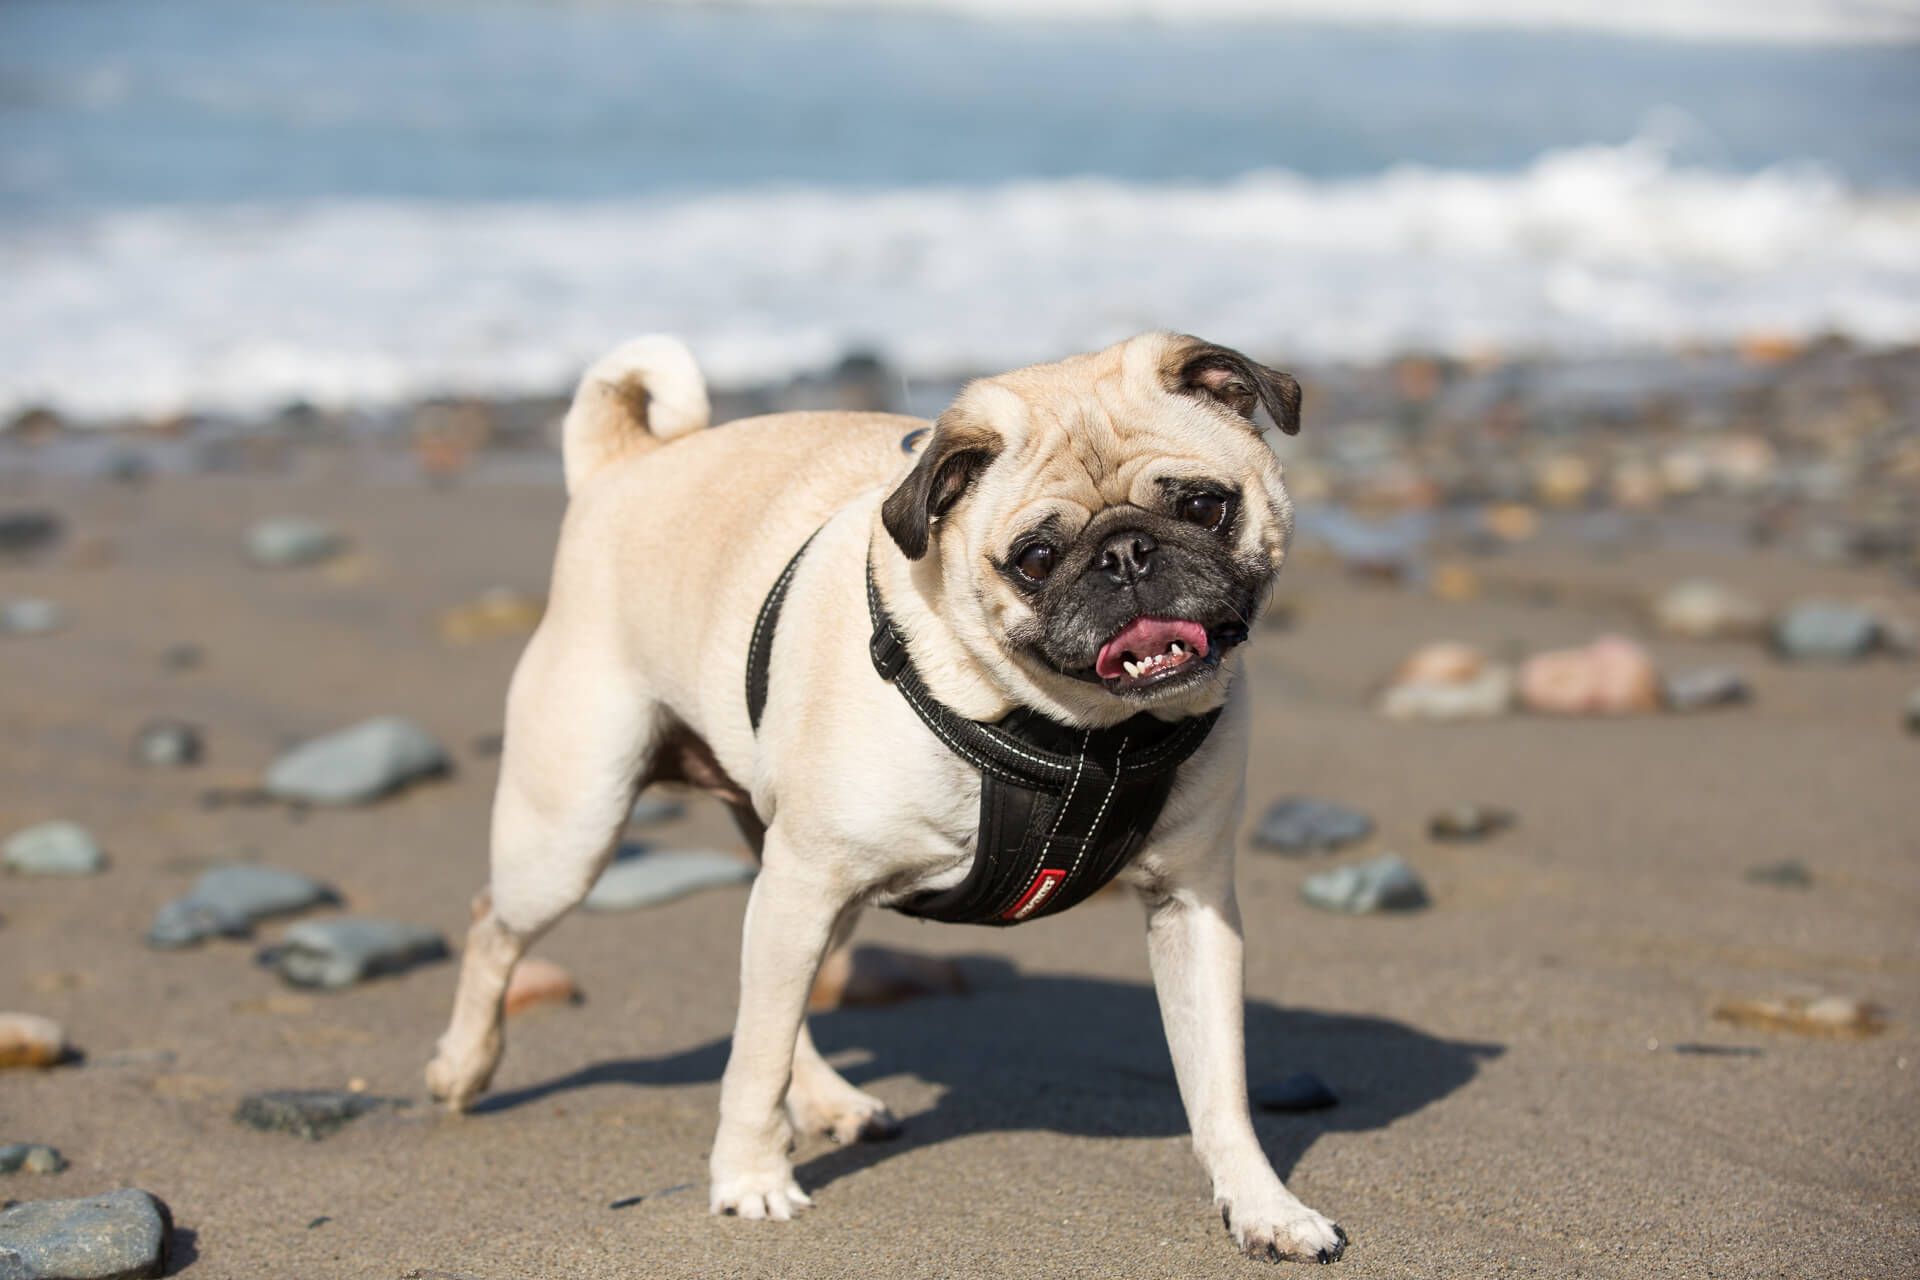 Pug on the beach in the day